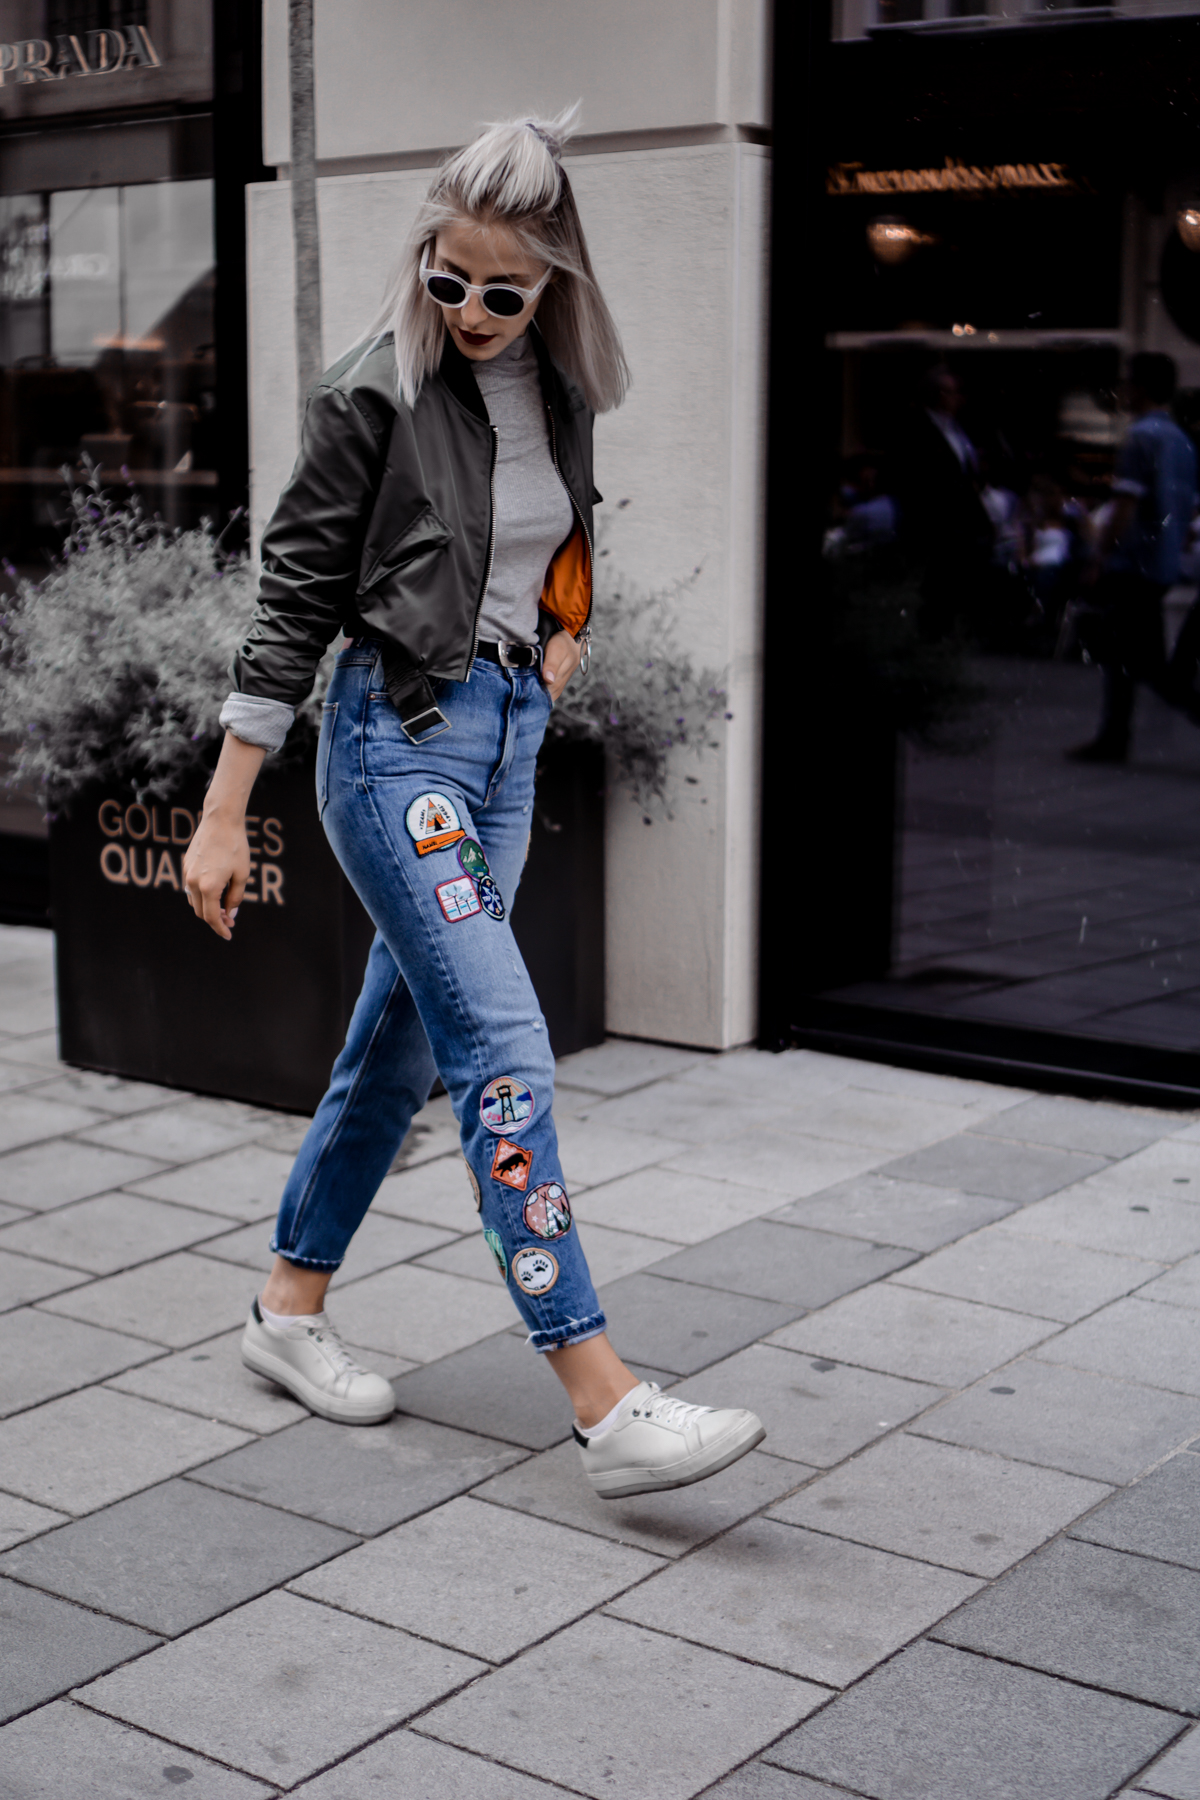 White Sunnies, Mom Jeans With Patches and Bomber Jacket